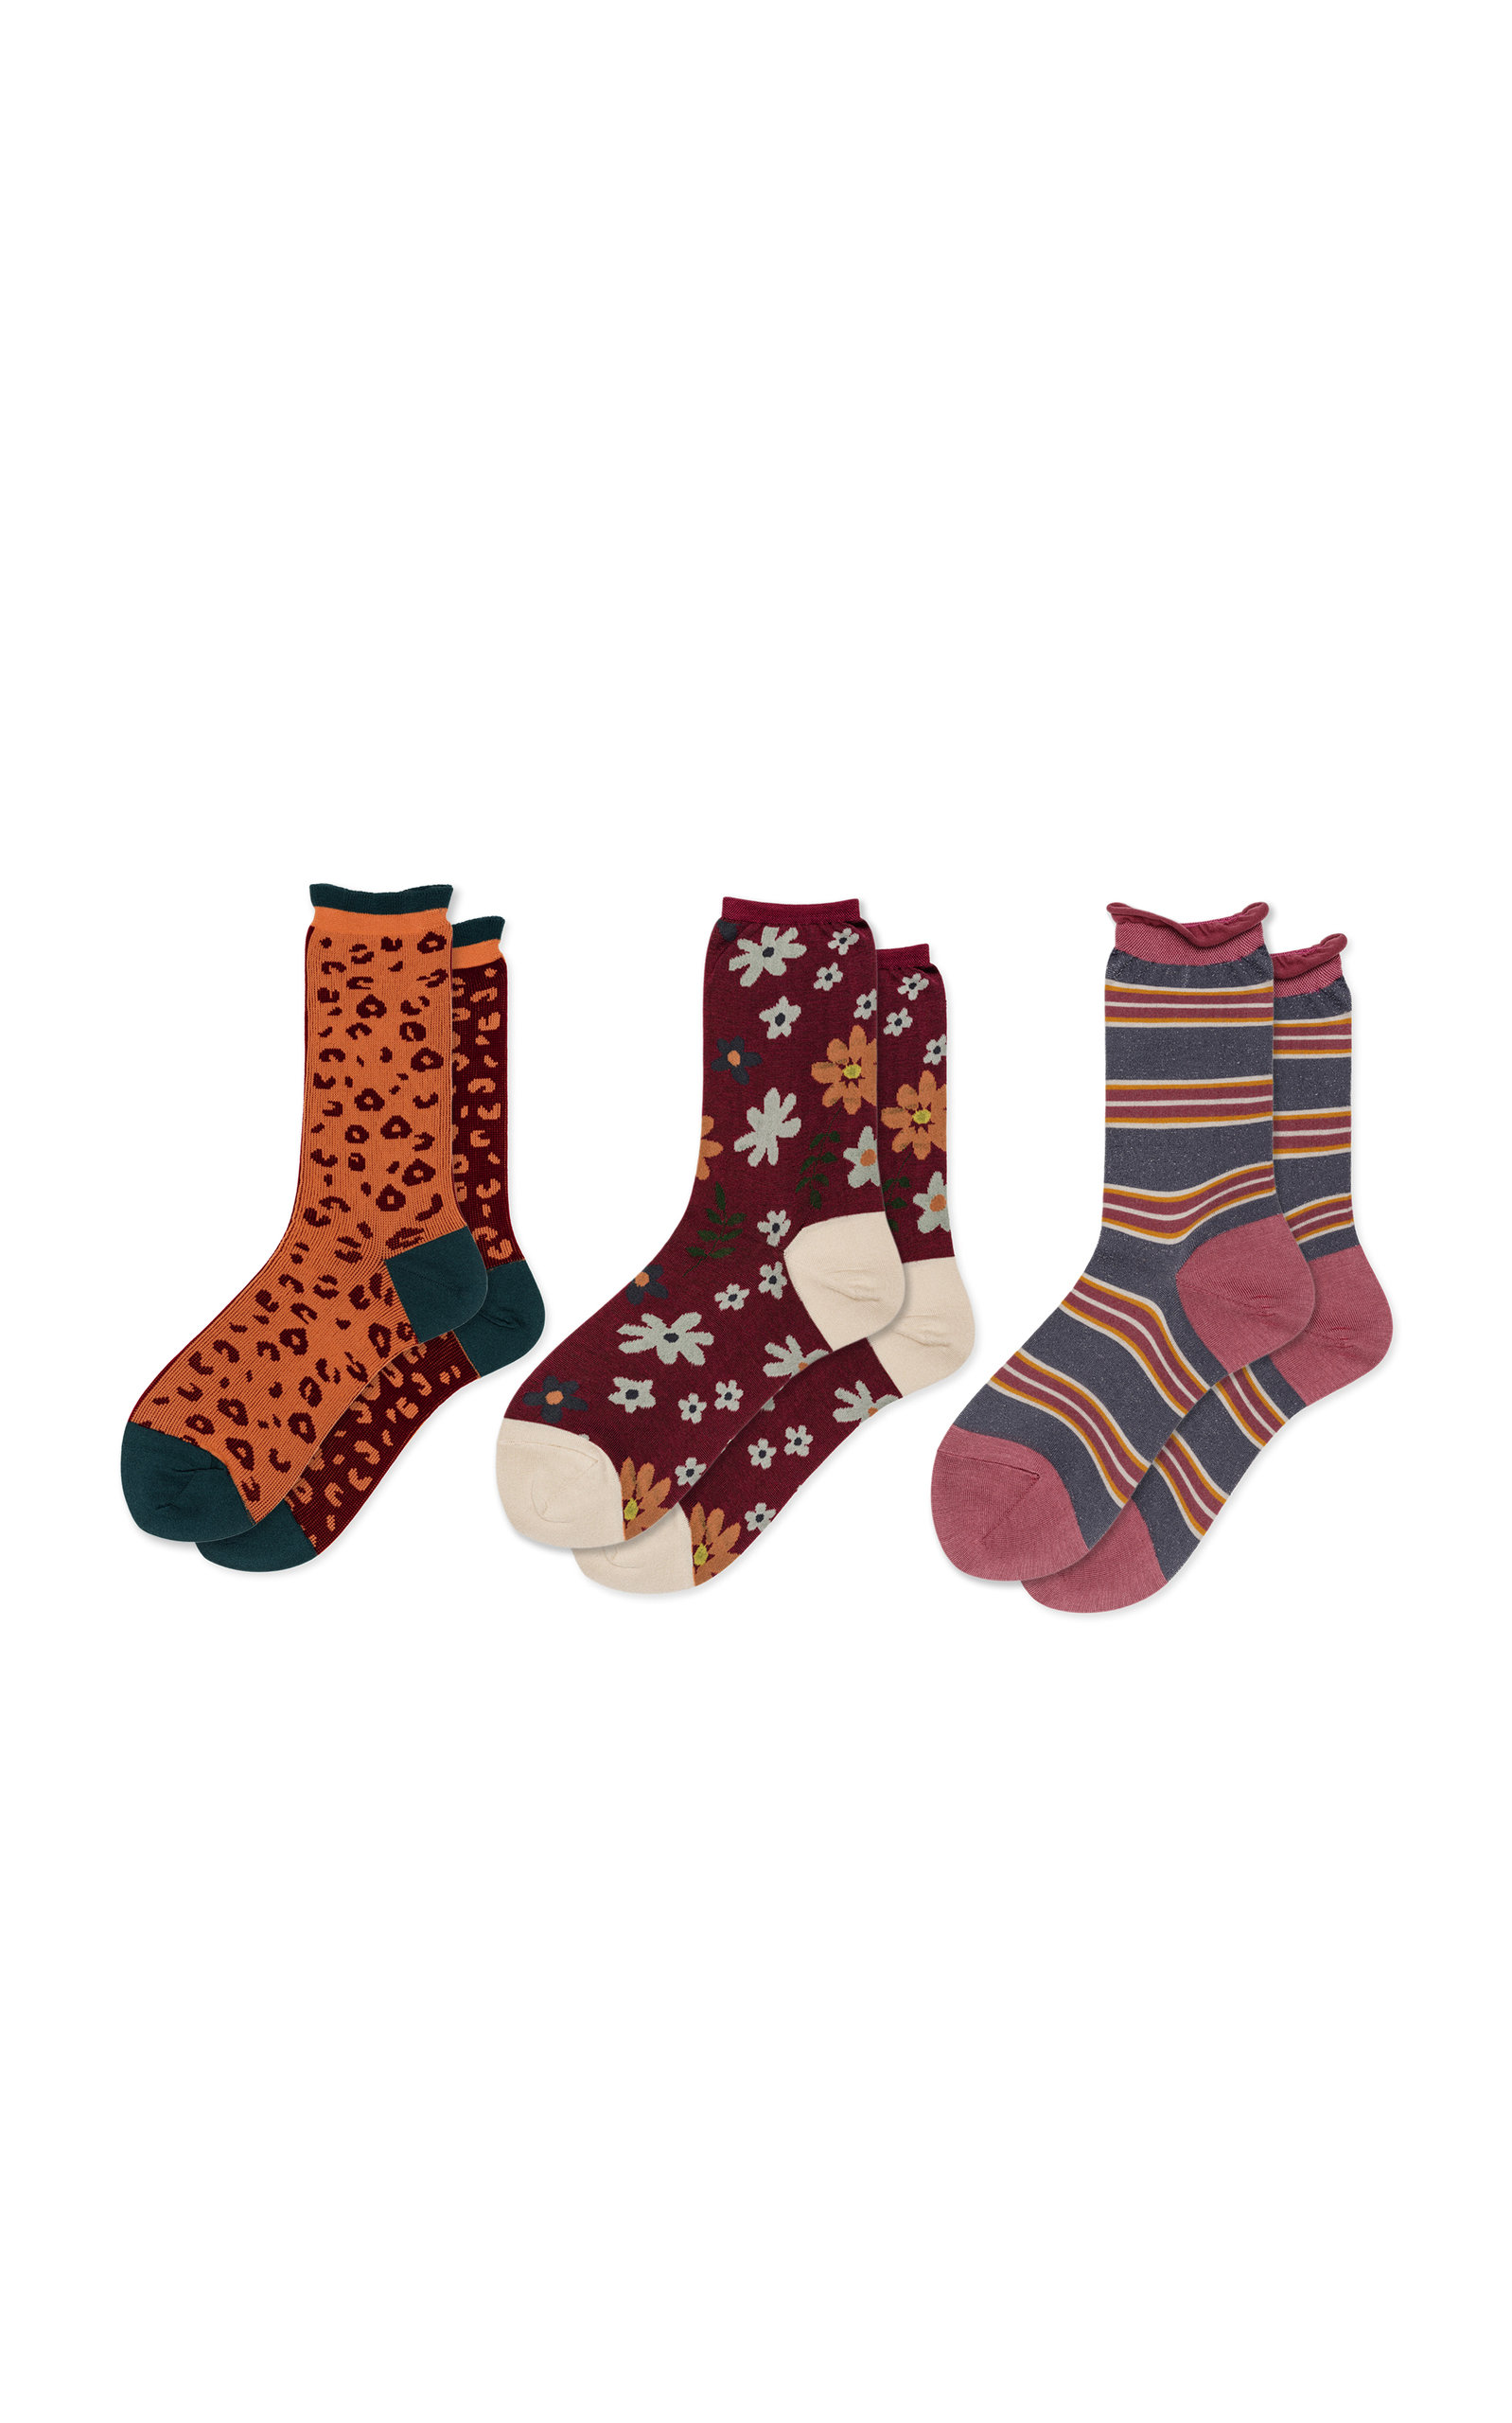 HANSEL FROM BASEL Set-Of-Three Unique Printed Cotton-Blend Crew Socks in Multi